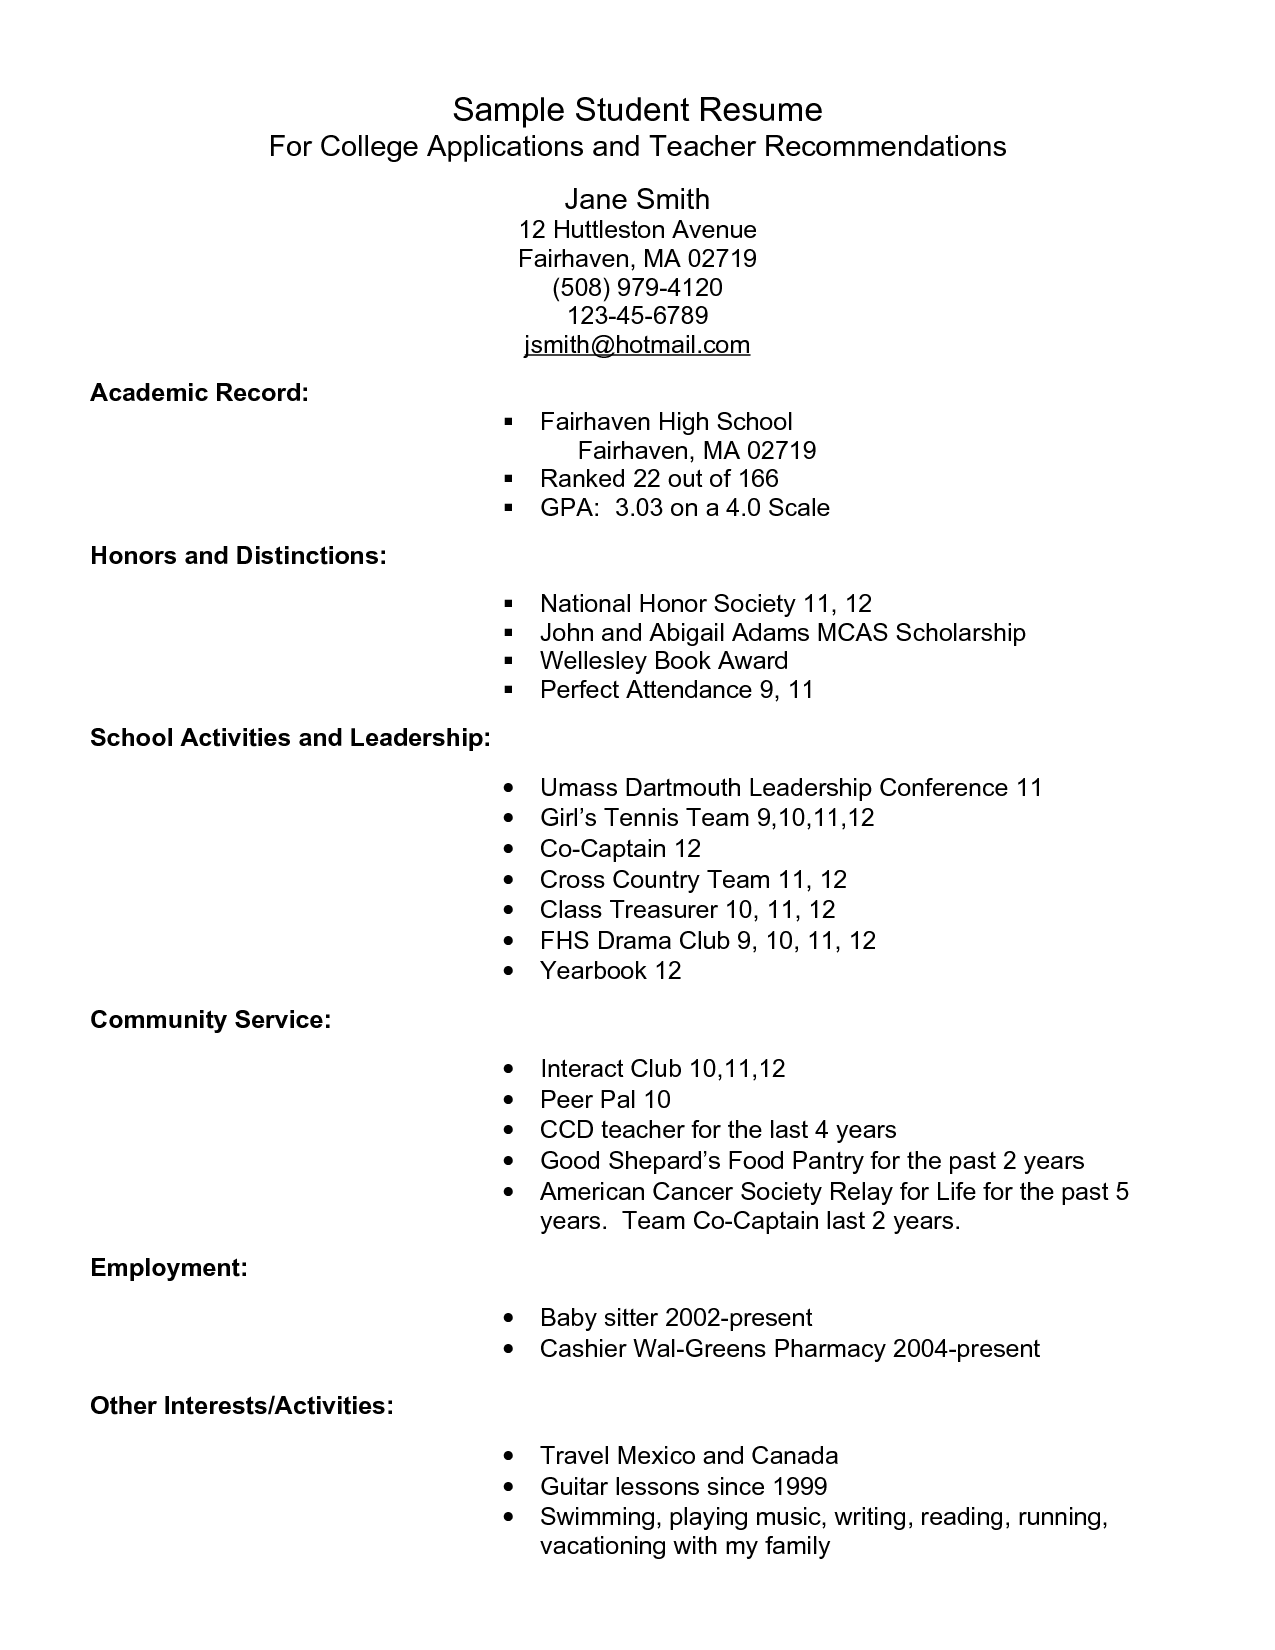 examples of national honor society resumes